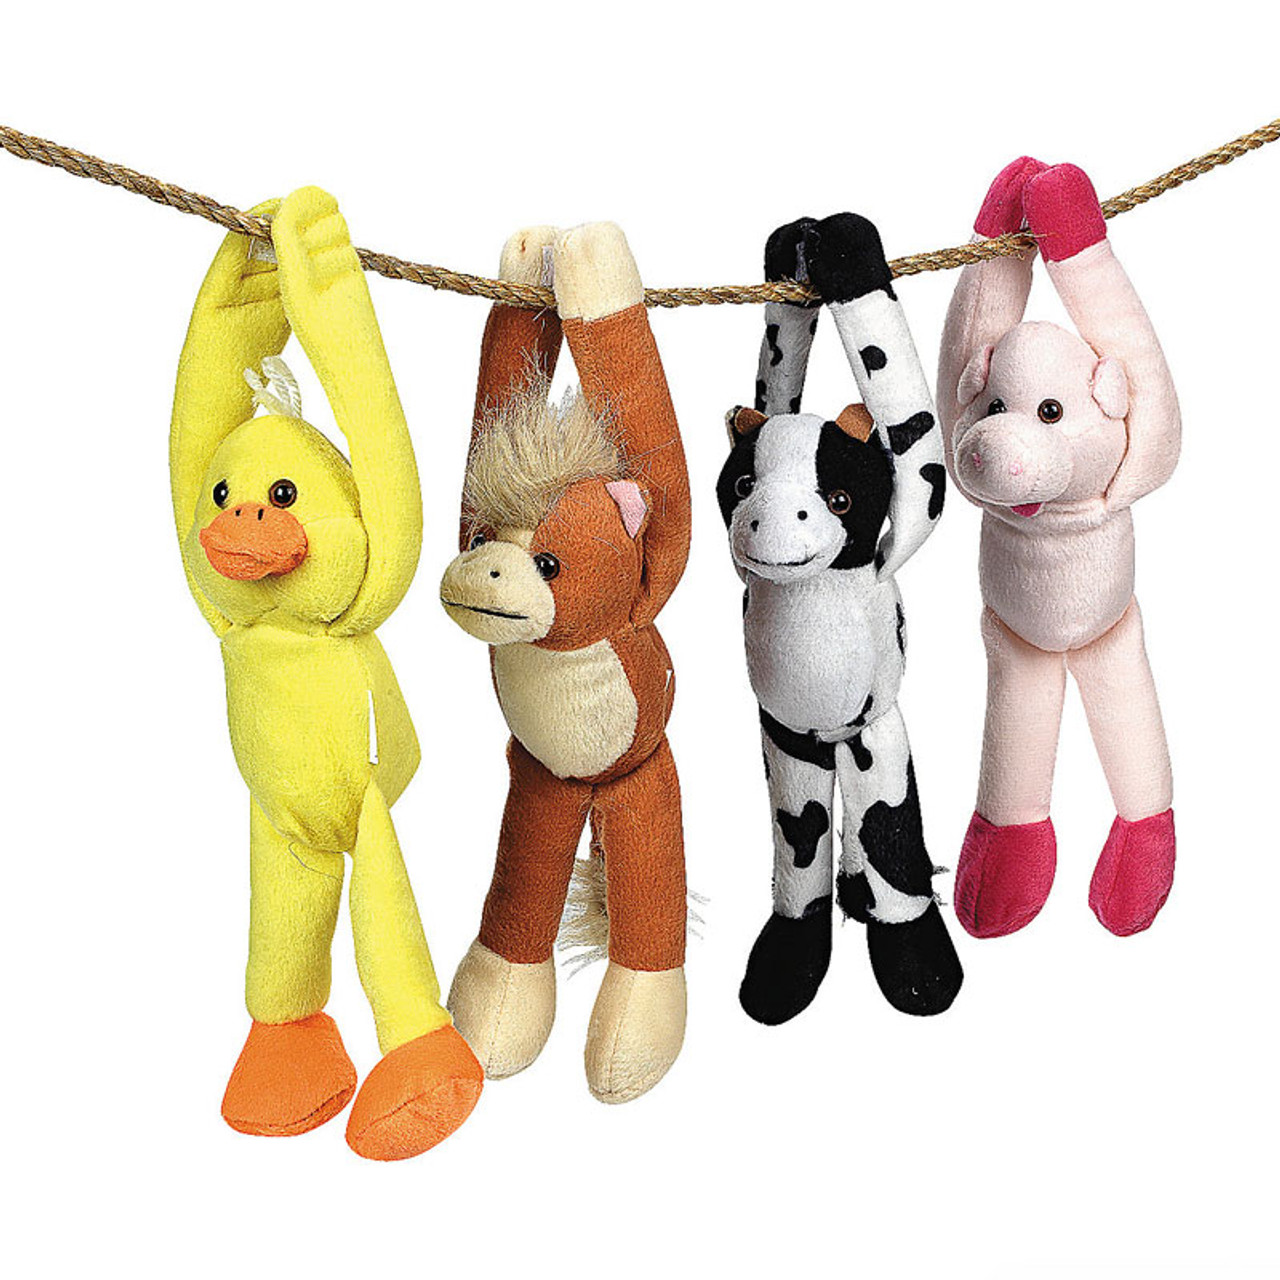 Adorable Farm Stuffed Animals Hang With Them